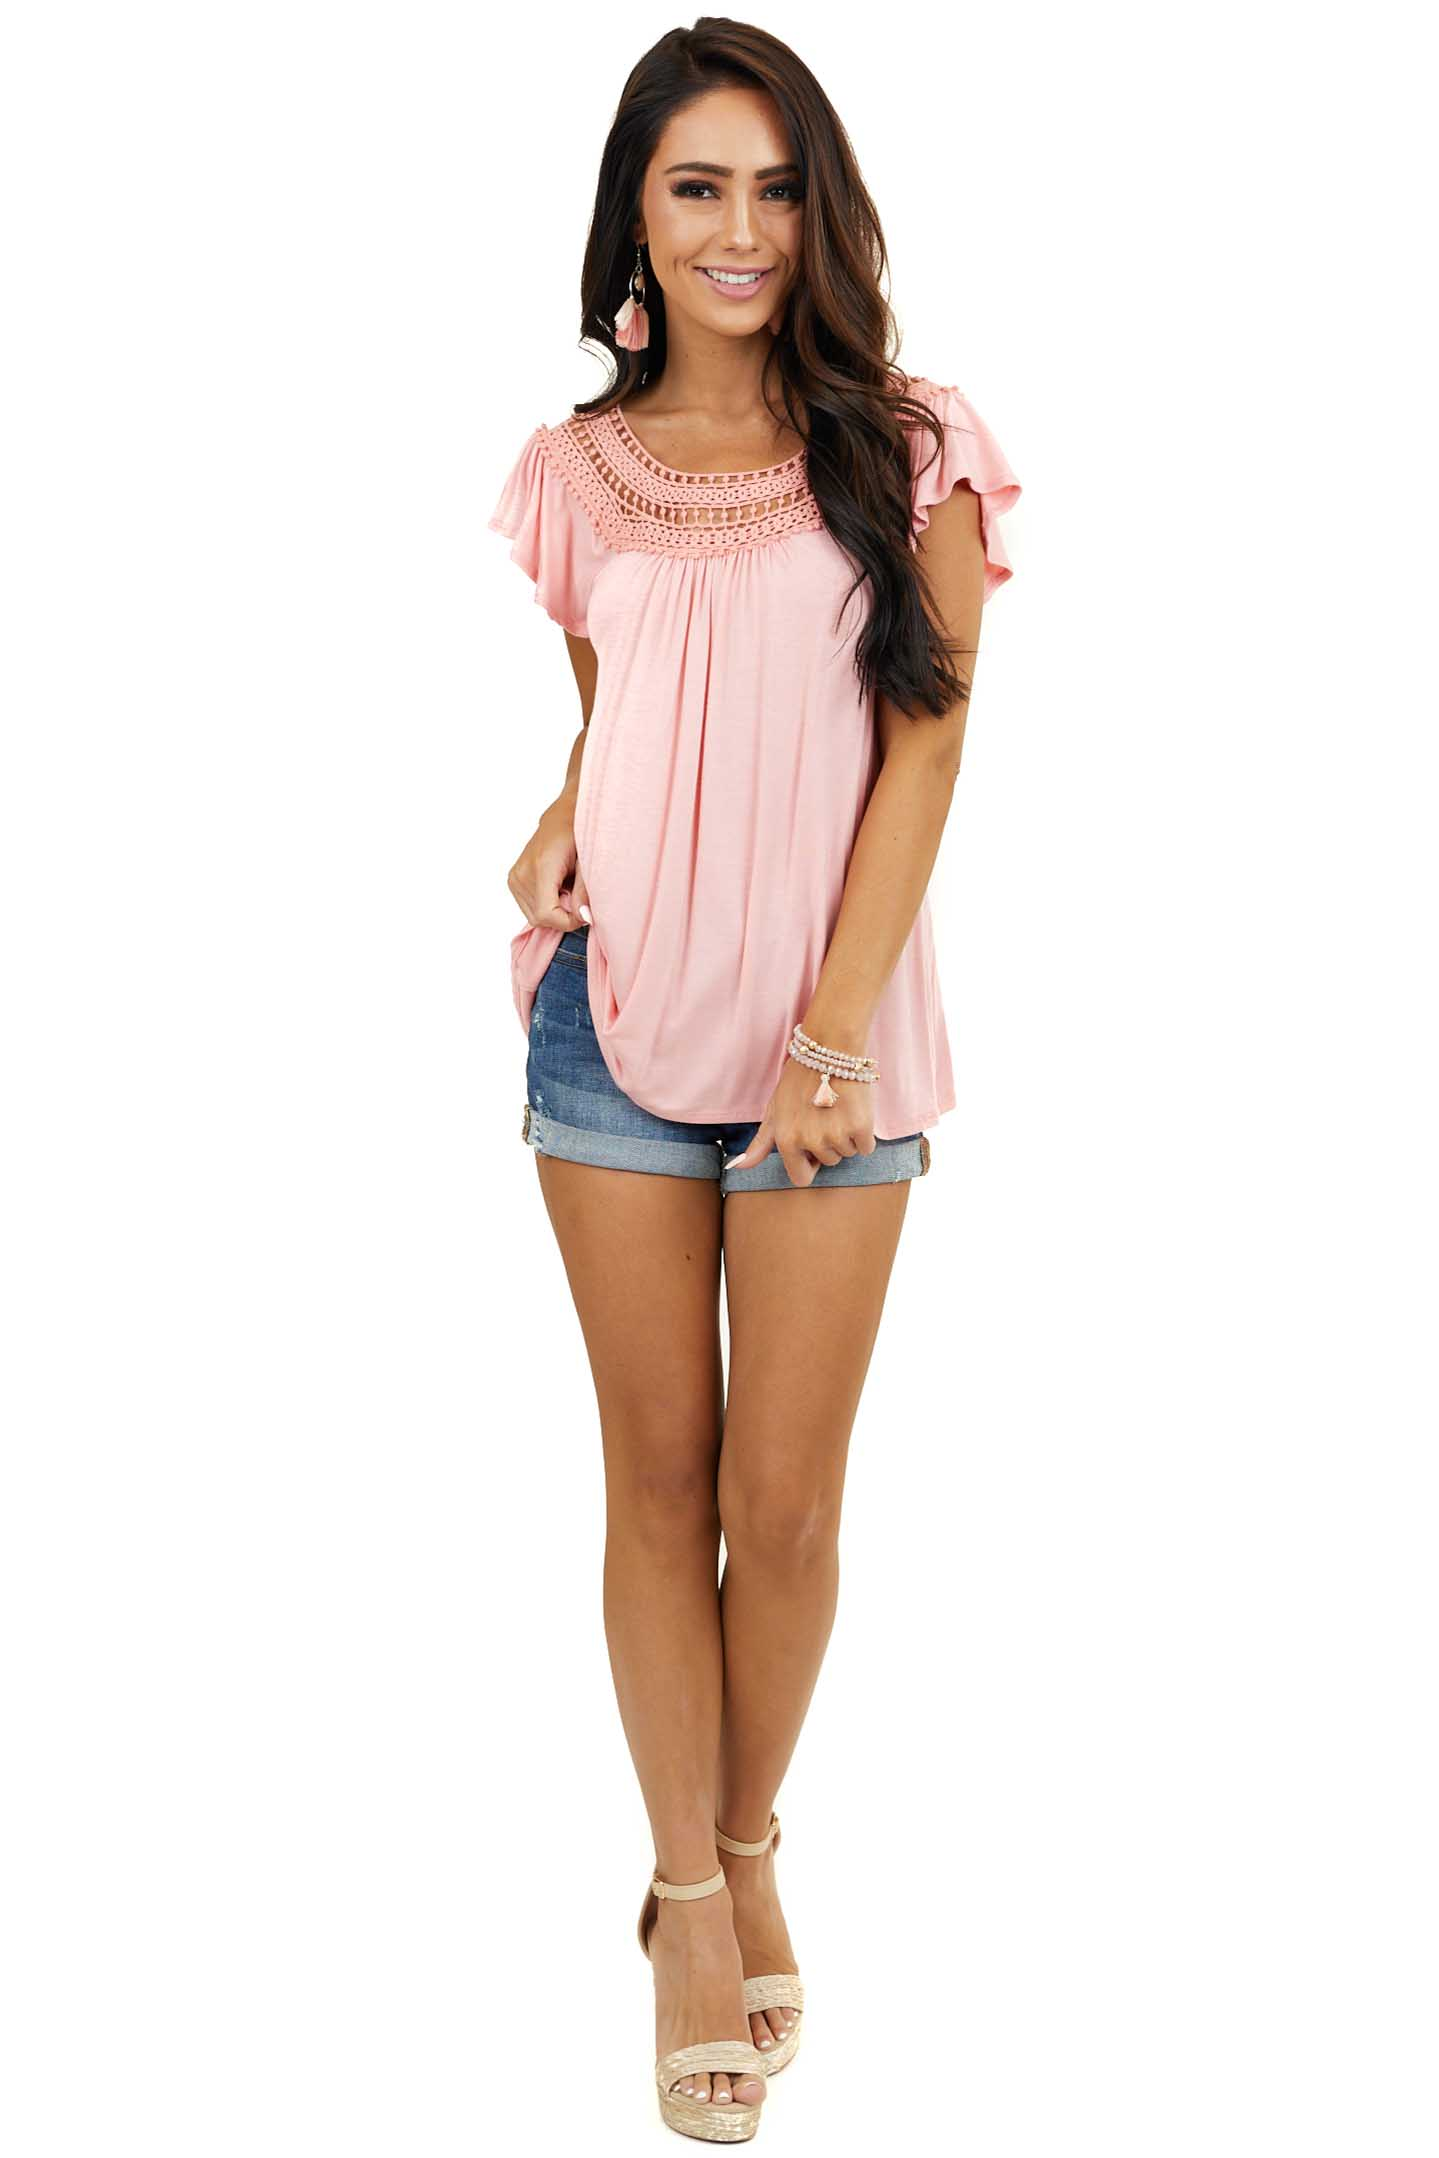 Coral Short Sleeve Knit Top with Crocheted Neckline Detail